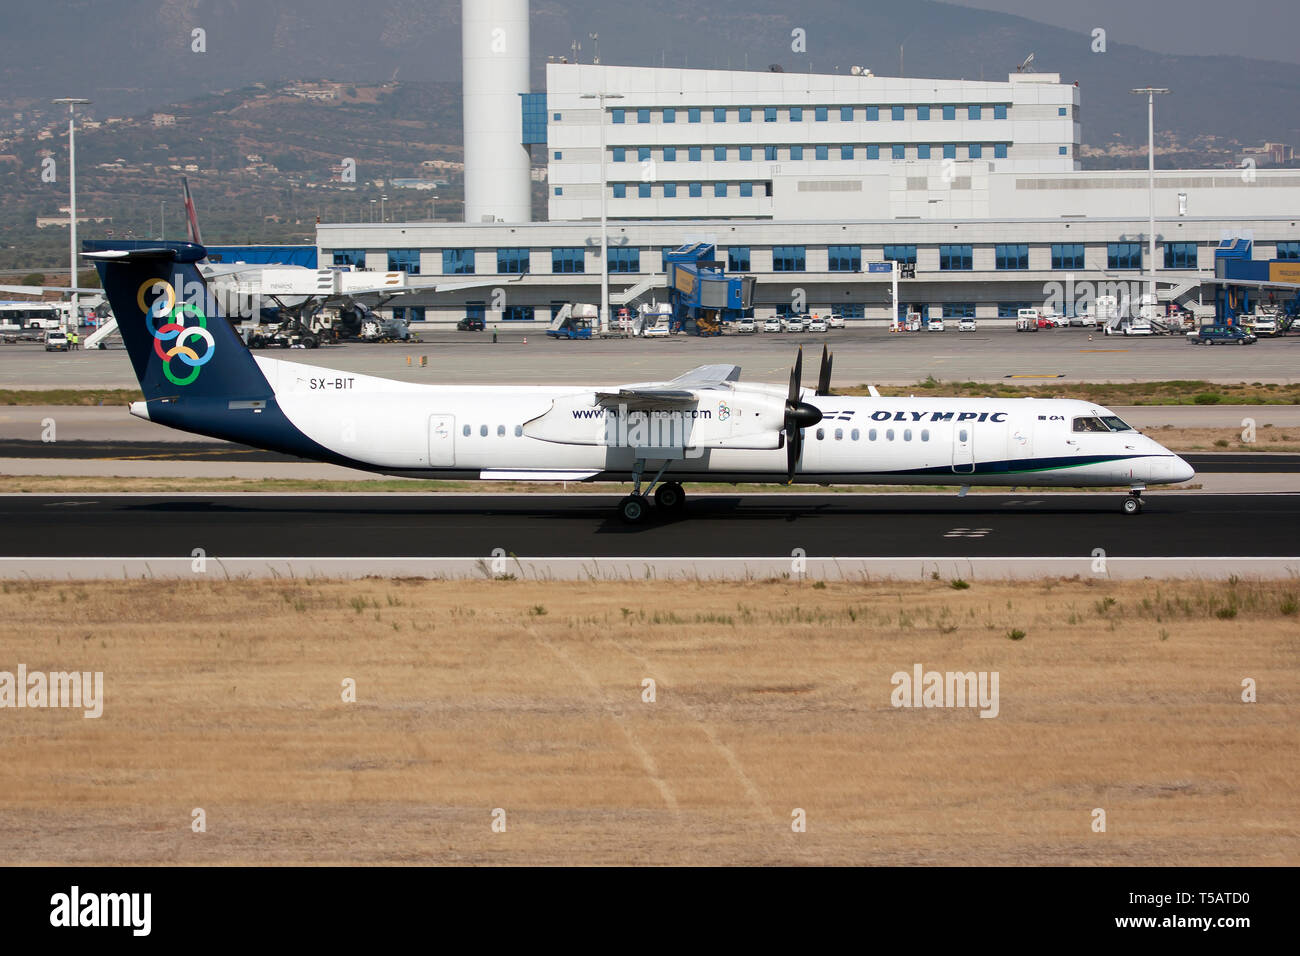 Athens, Greece. 10th Sep, 2016. An Olympic Air Bombardier Dash 8-400 seen departing from the Athens' airport. Credit: Fabrizio Gandolfo/SOPA Images/ZUMA Wire/Alamy Live News - Stock Image